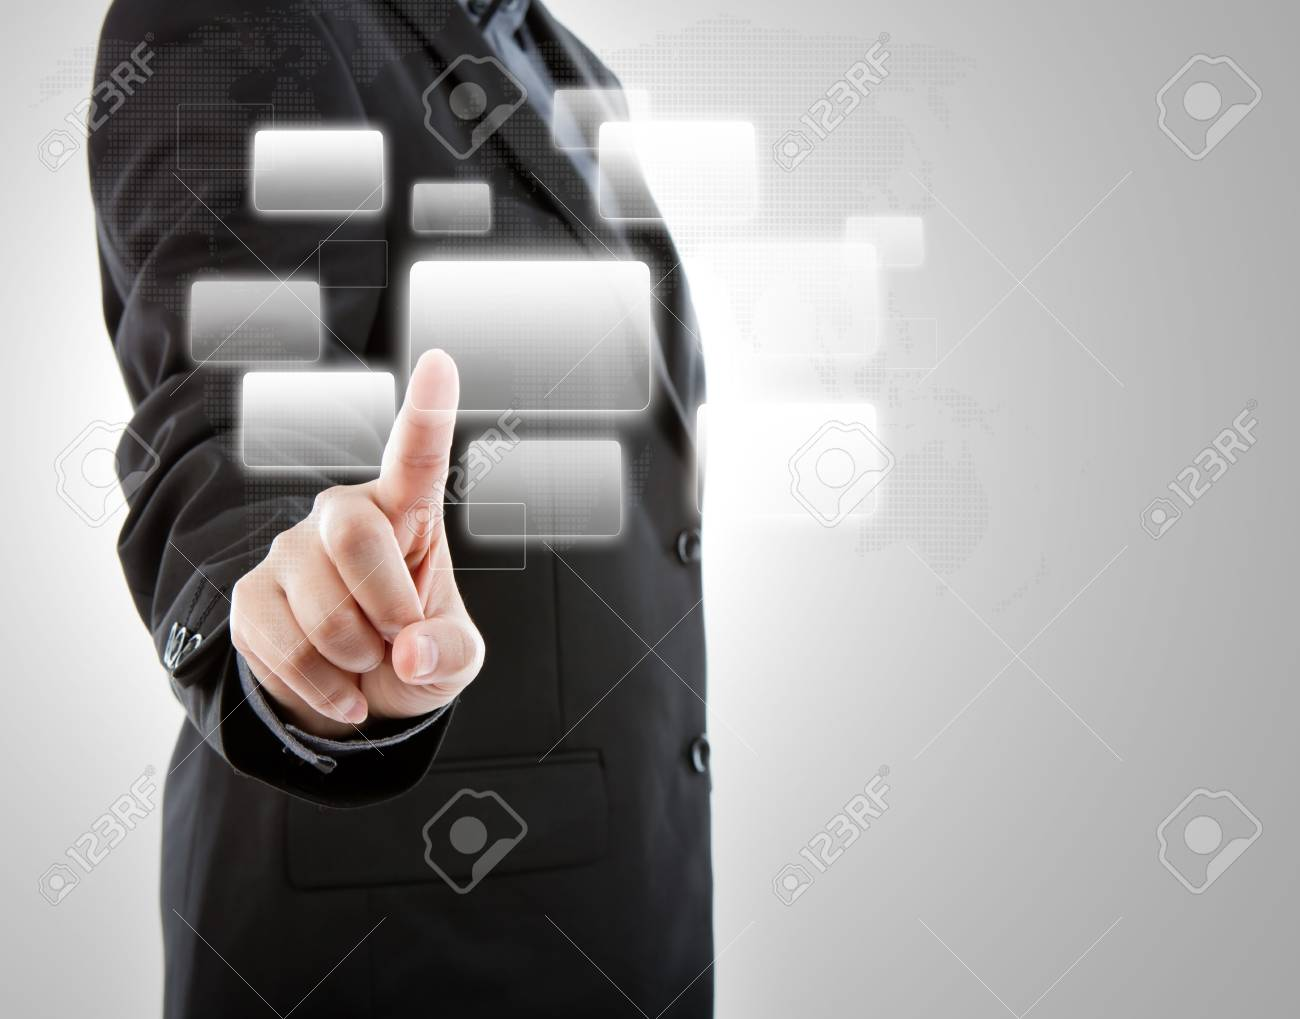 Business man pushing a button on a touch screen interface Stock Photo - 13850747